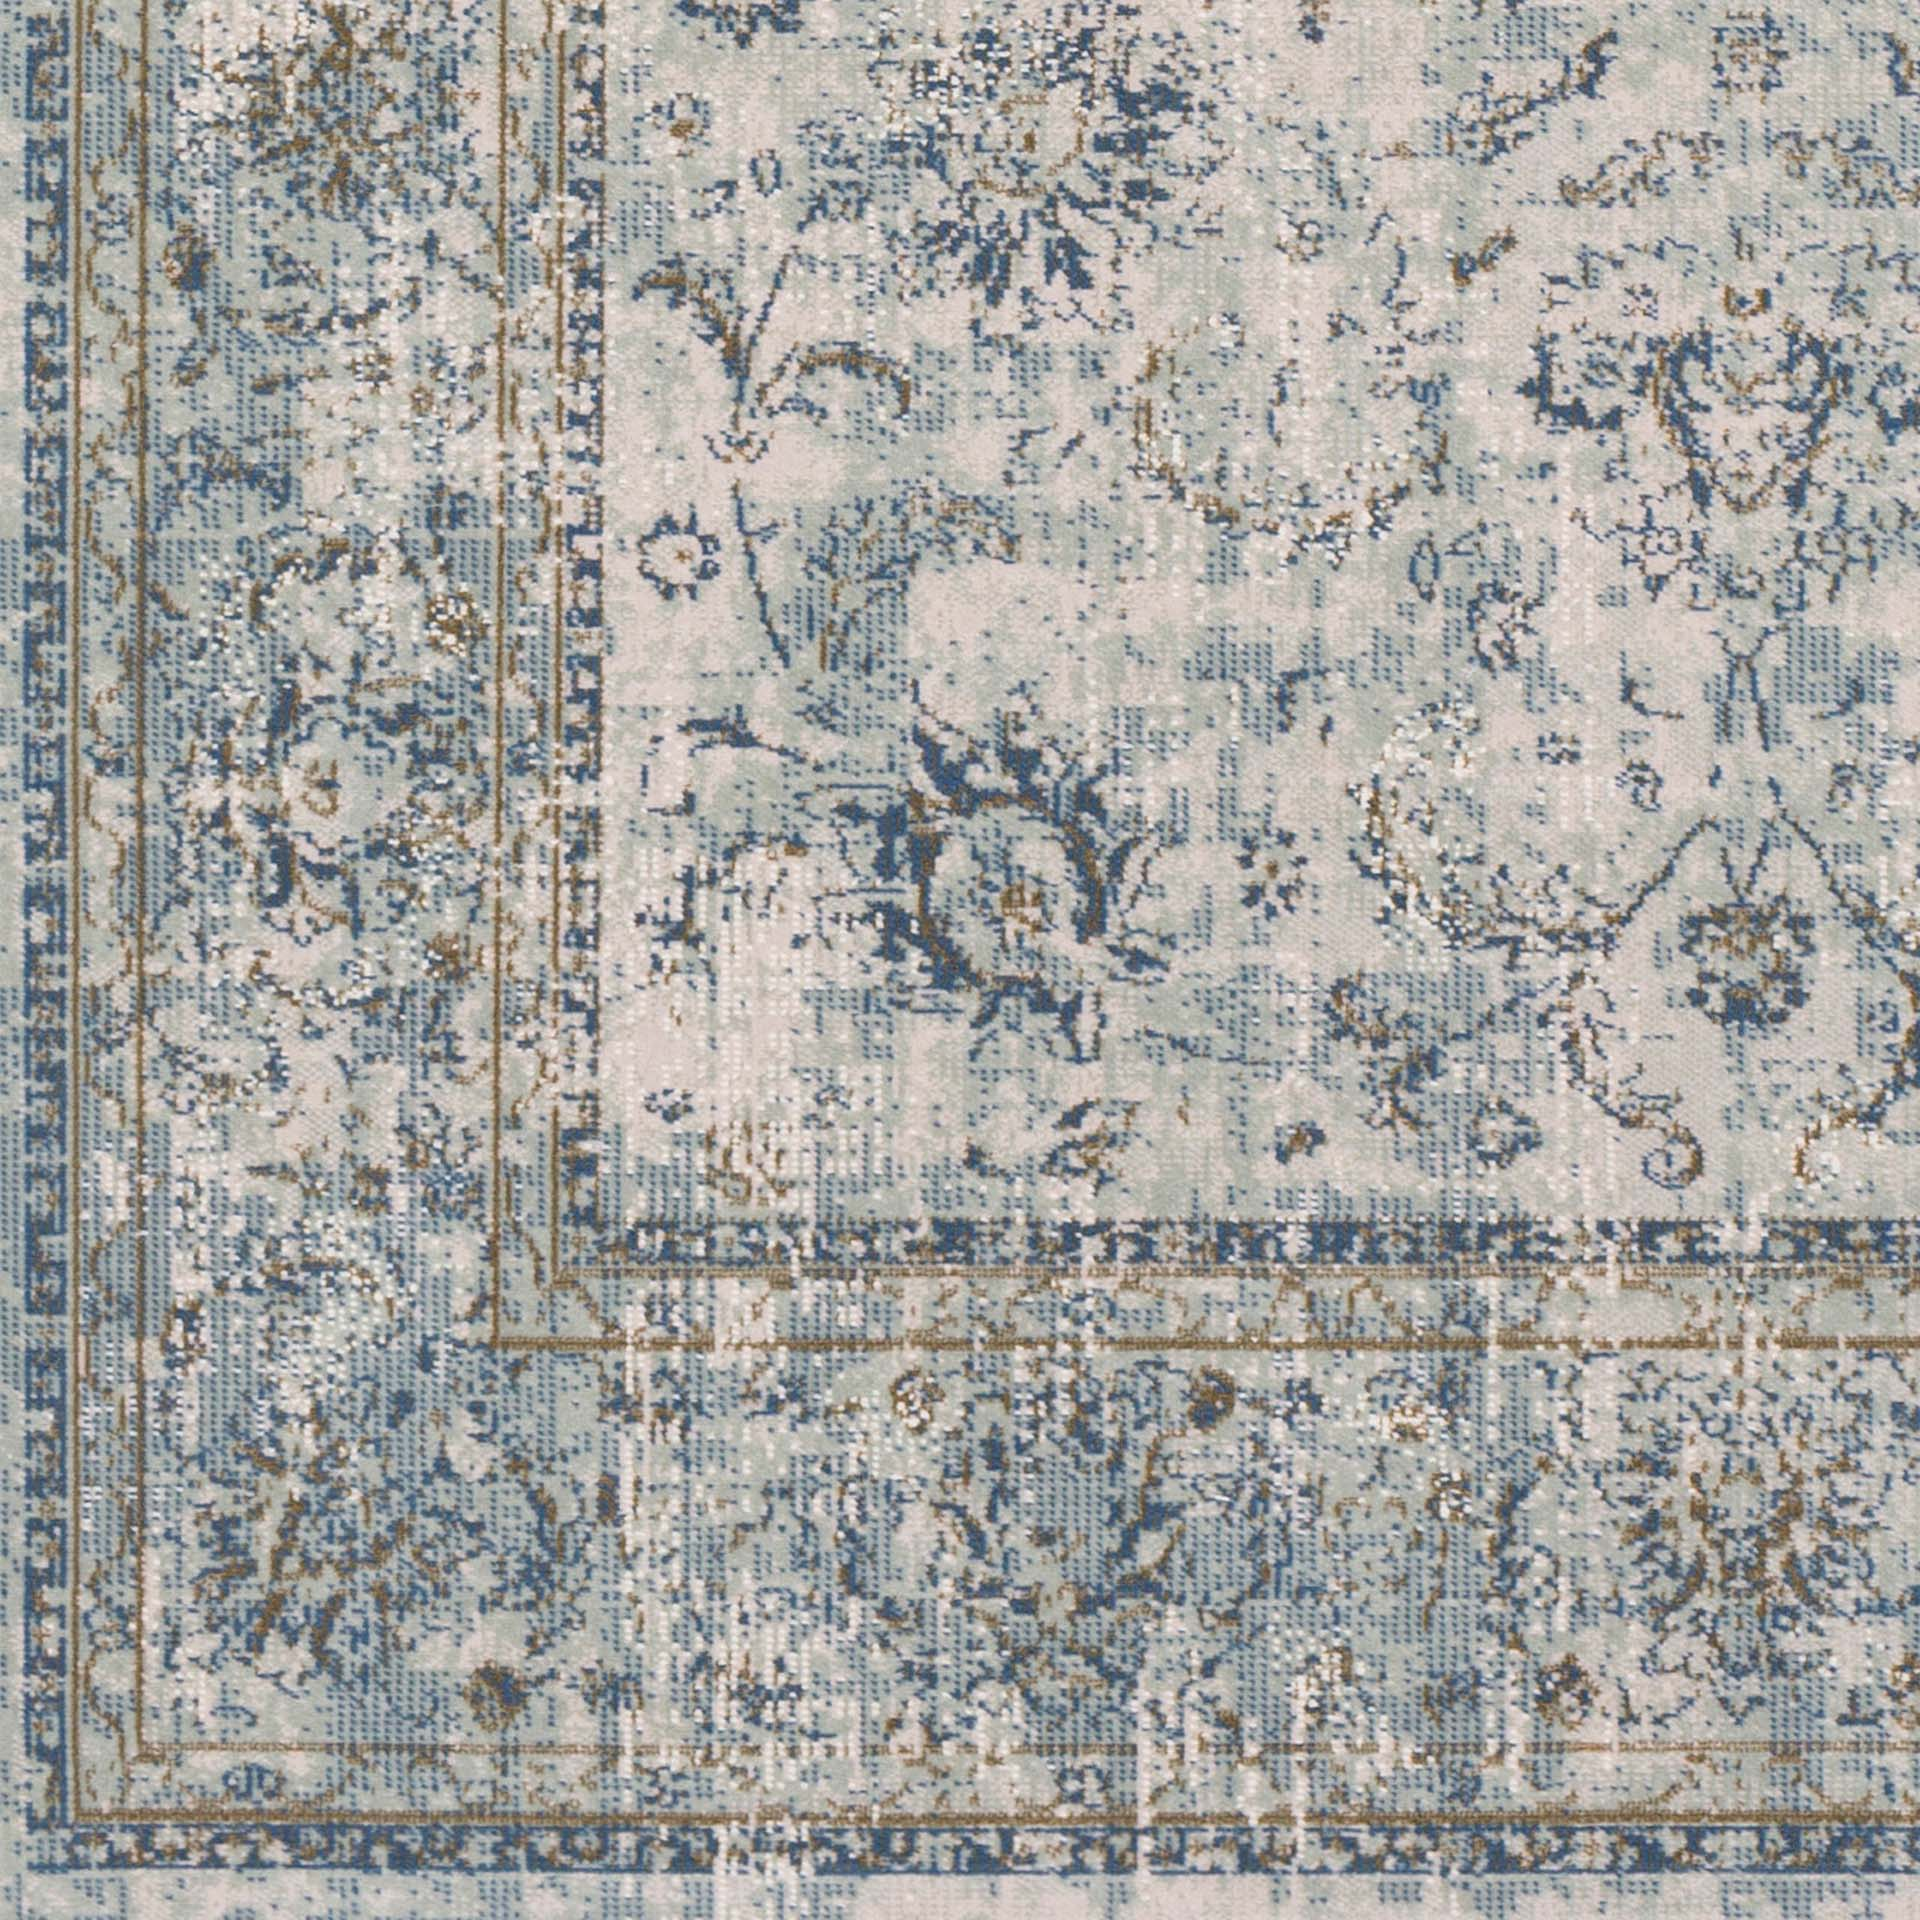 Surya Stonewashed Snw 2304 Area Rug The Dump Luxe